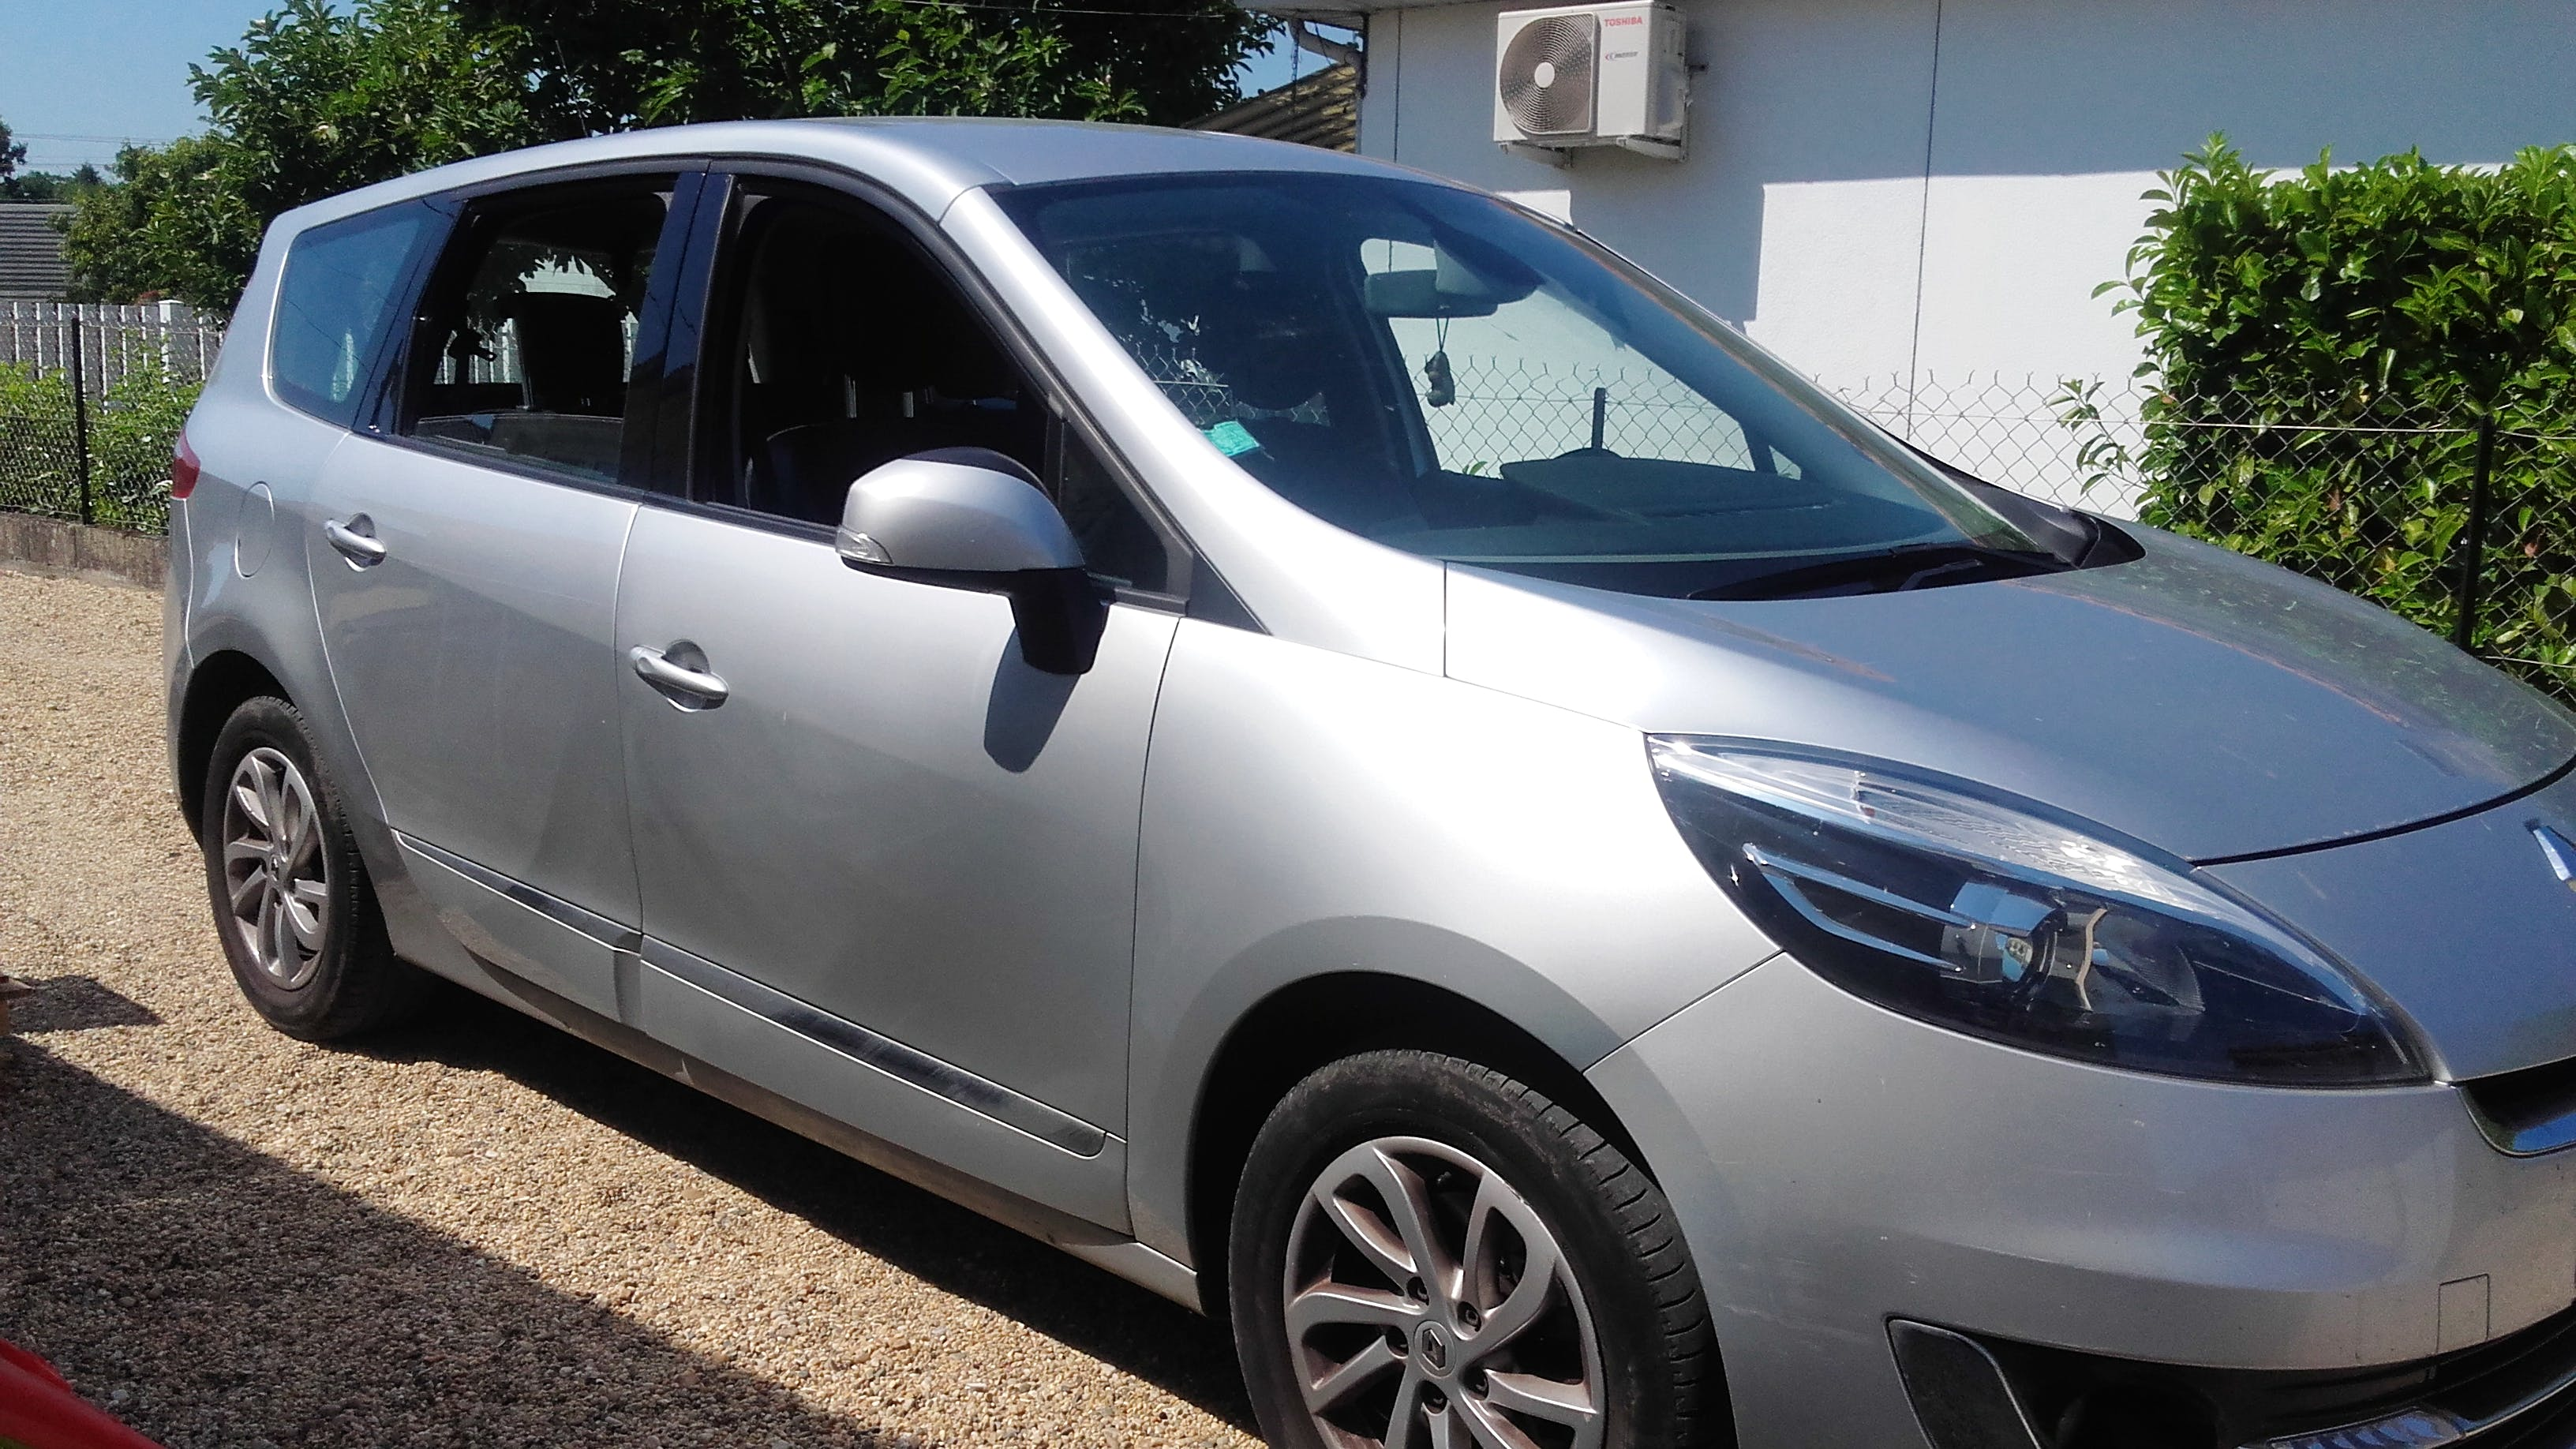 Renault Grand Scénic, 2012, Diesel, 7 places